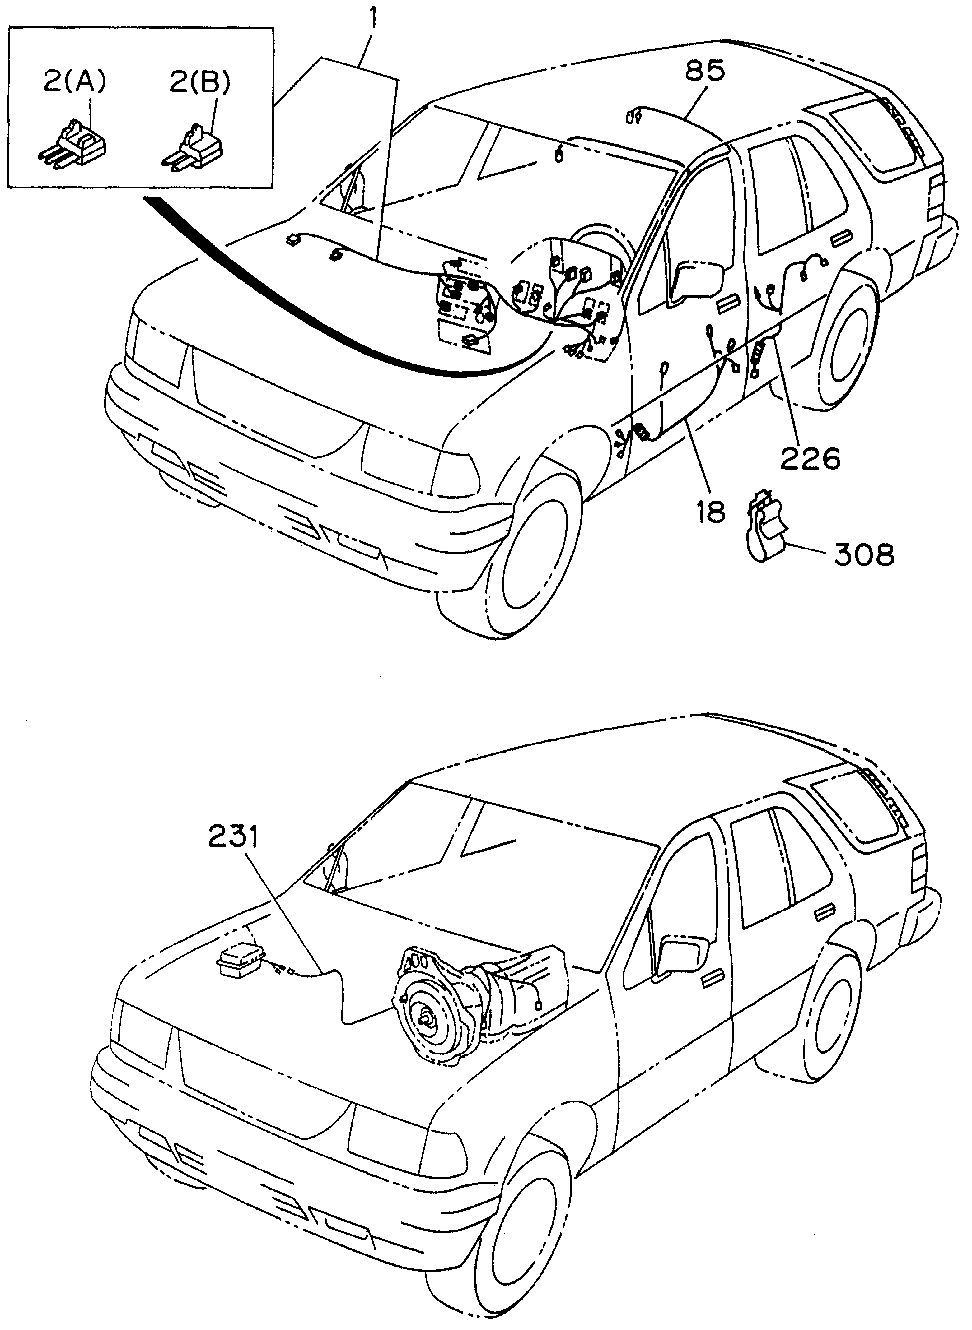 8-97139-443-1 - WIRE HARNESS, TRANSMISSION